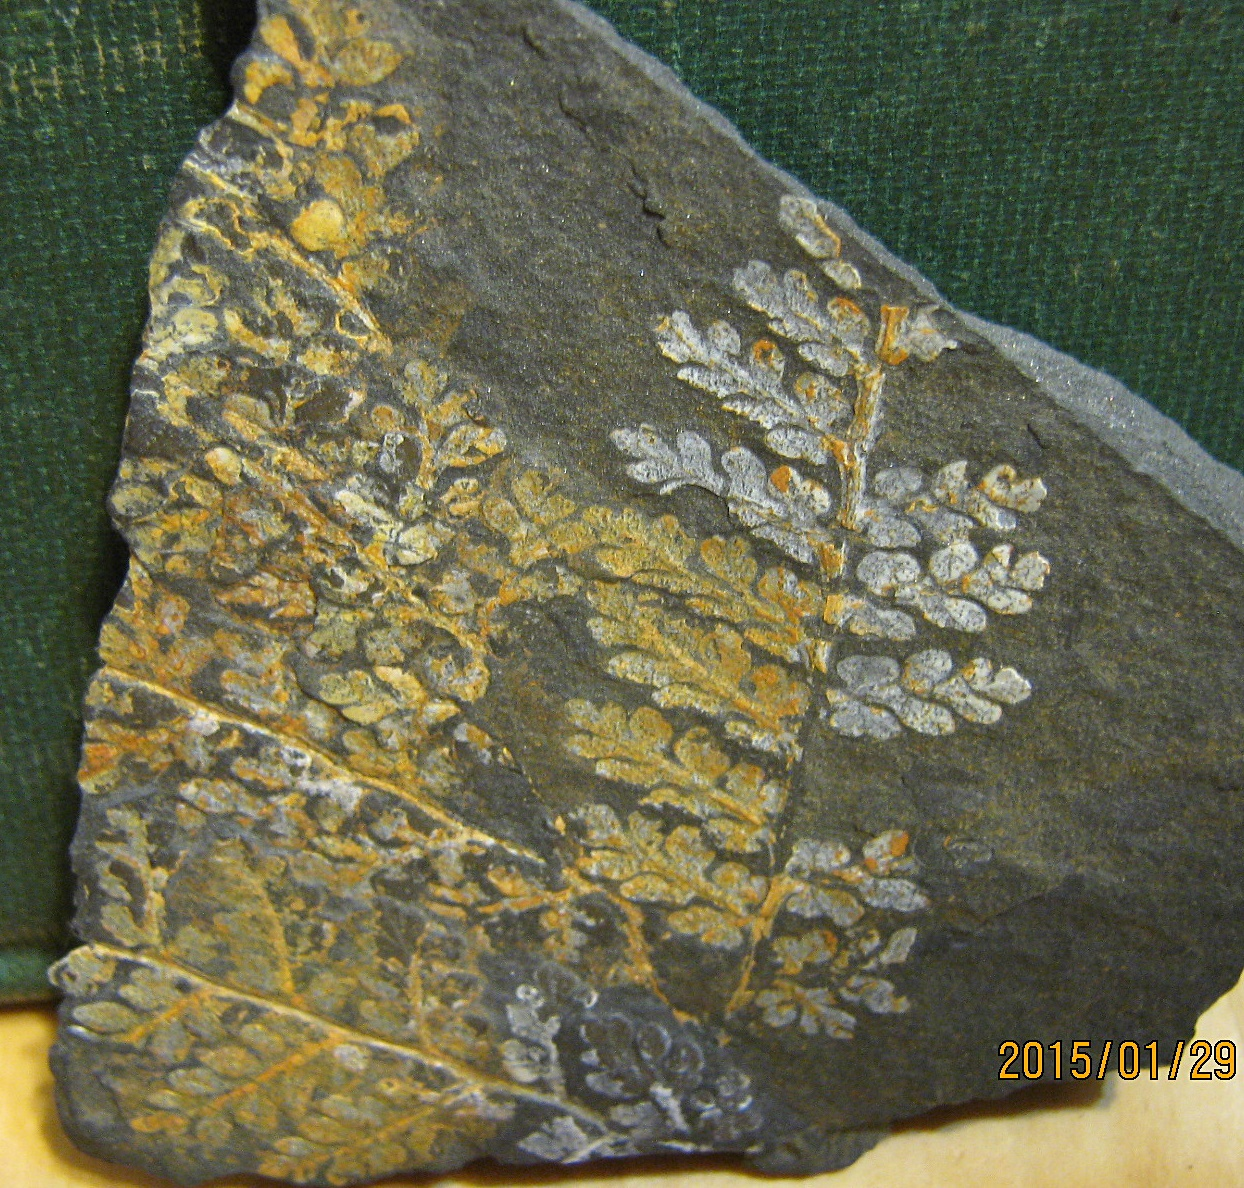 Pyrite fern from St. Clair, PA.